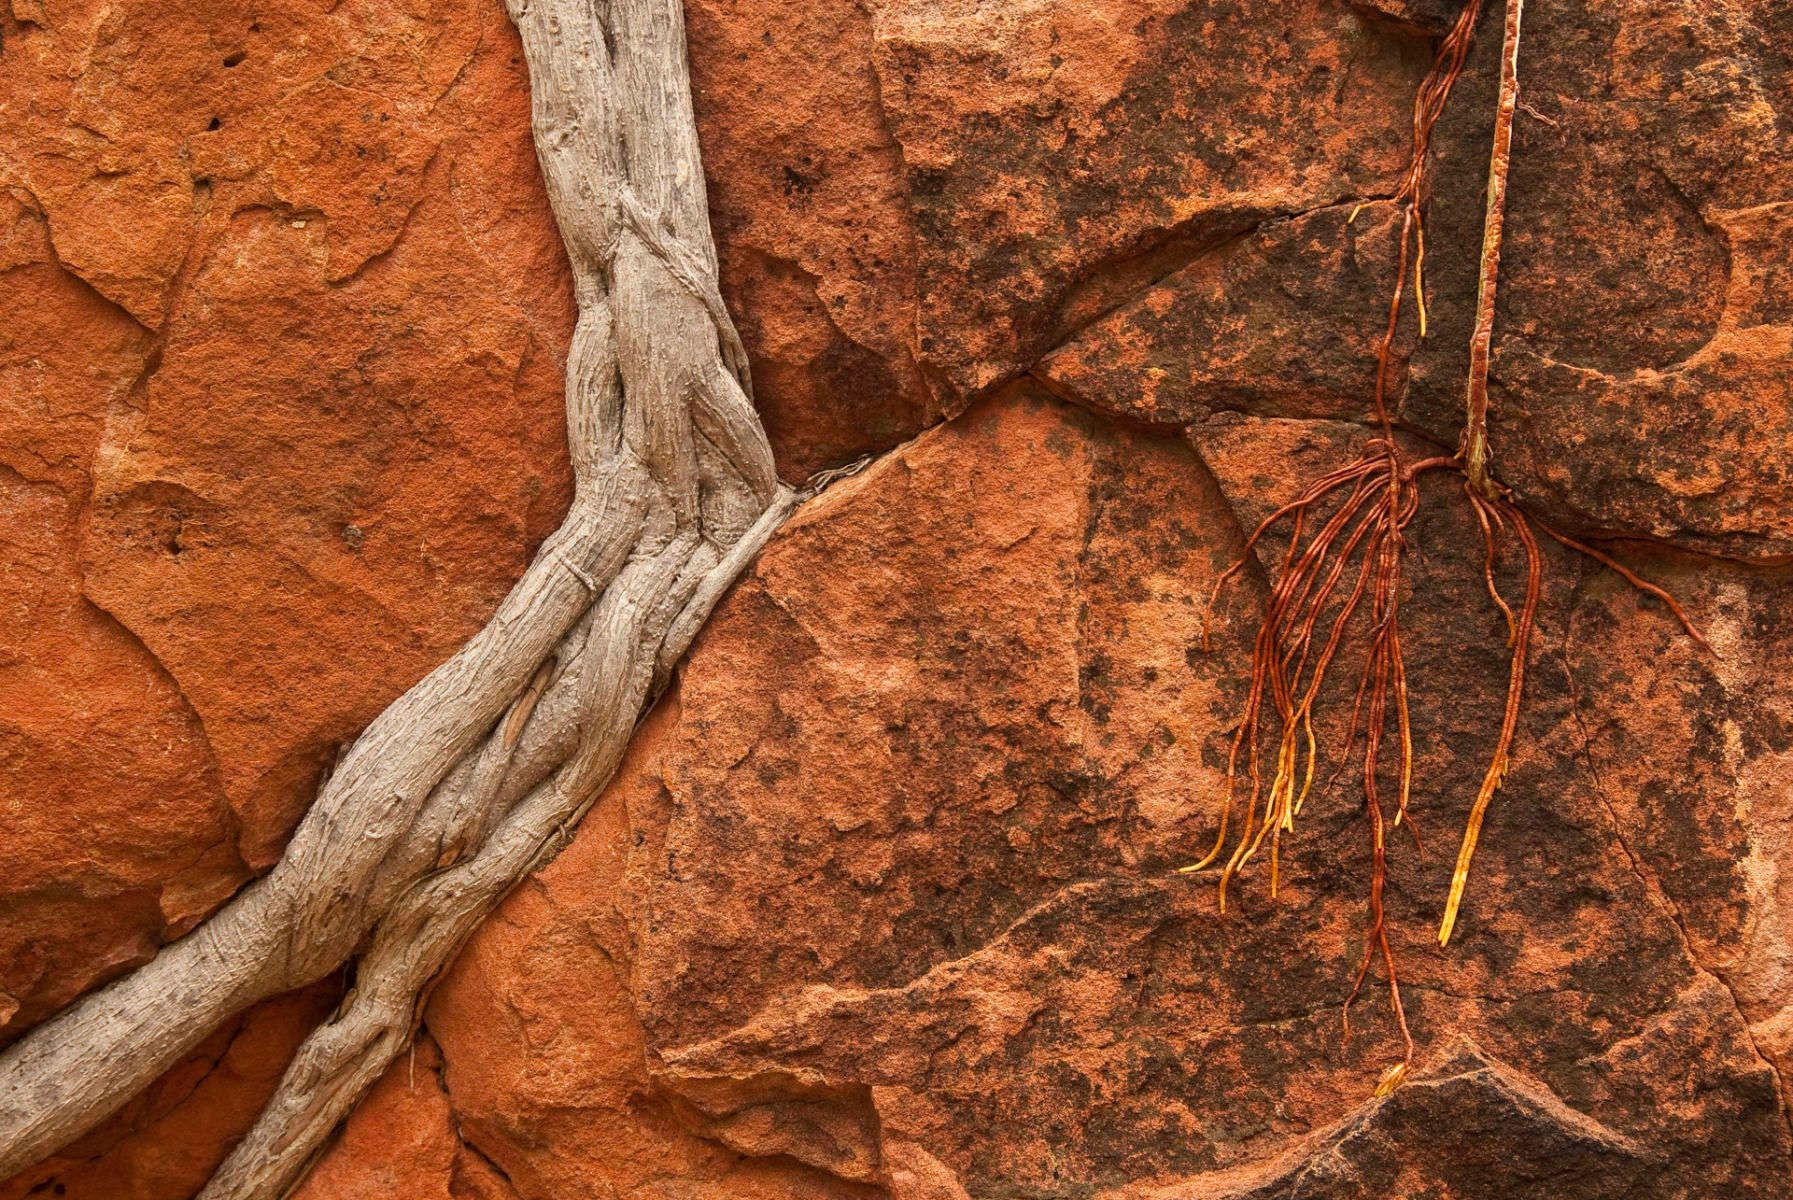 1roots_and_rock__dsc0202.jpg